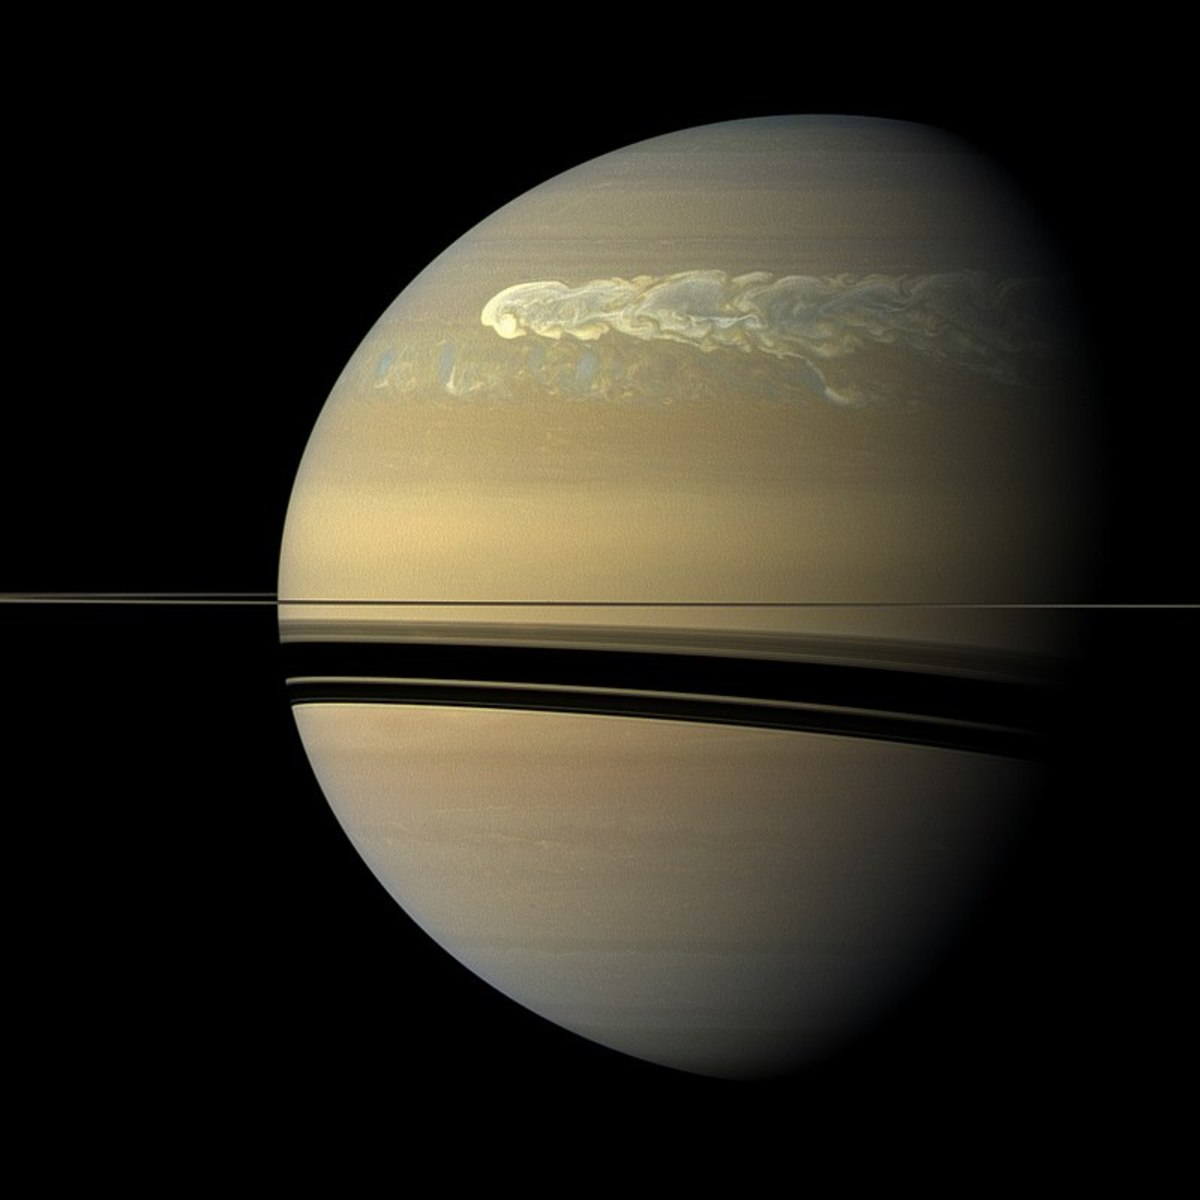 Close-up of Saturn's surface.